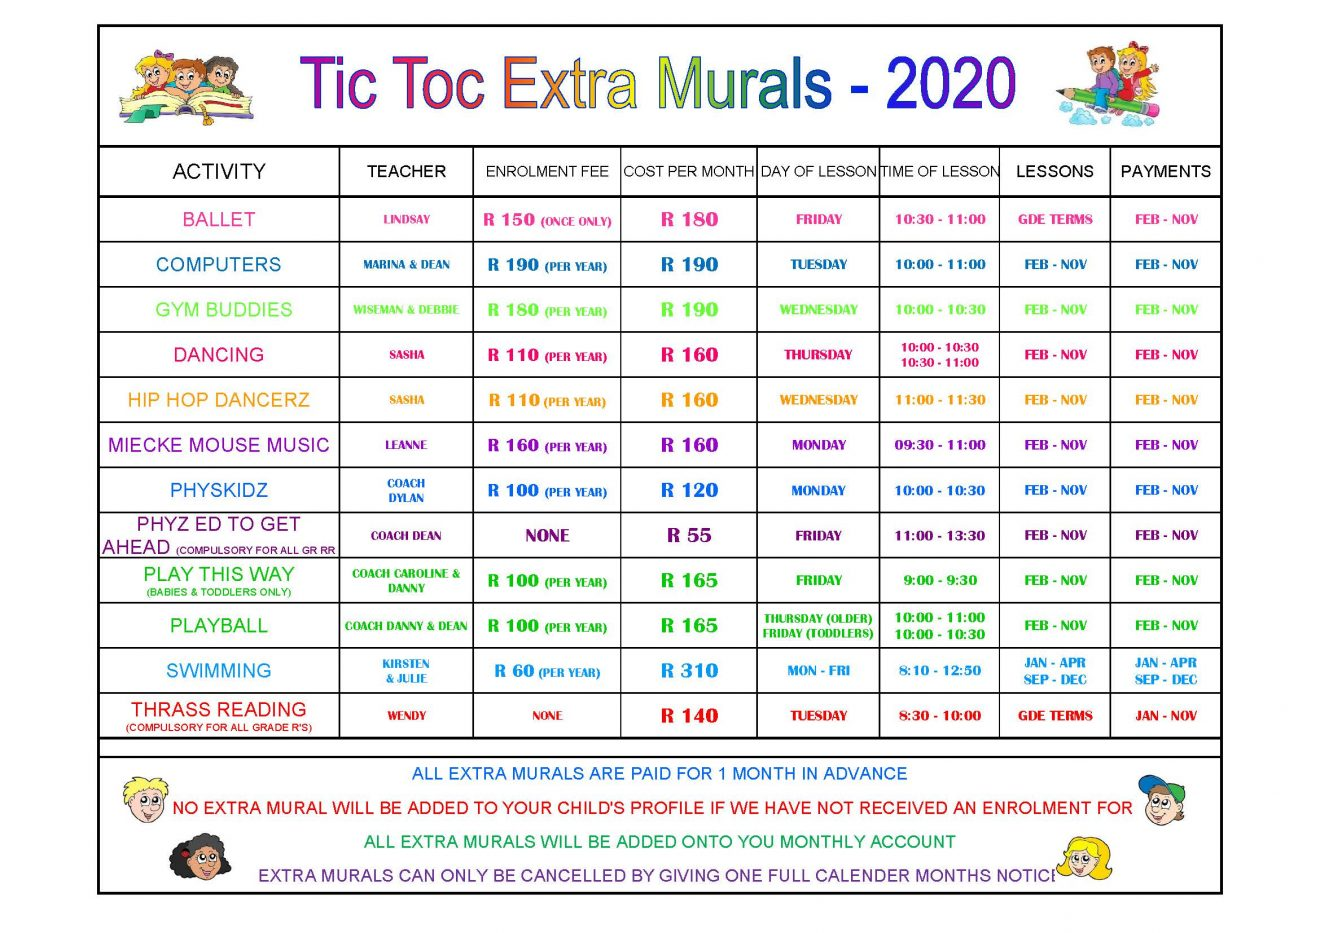 Copy of EXTRA MURAL LIST - 2020